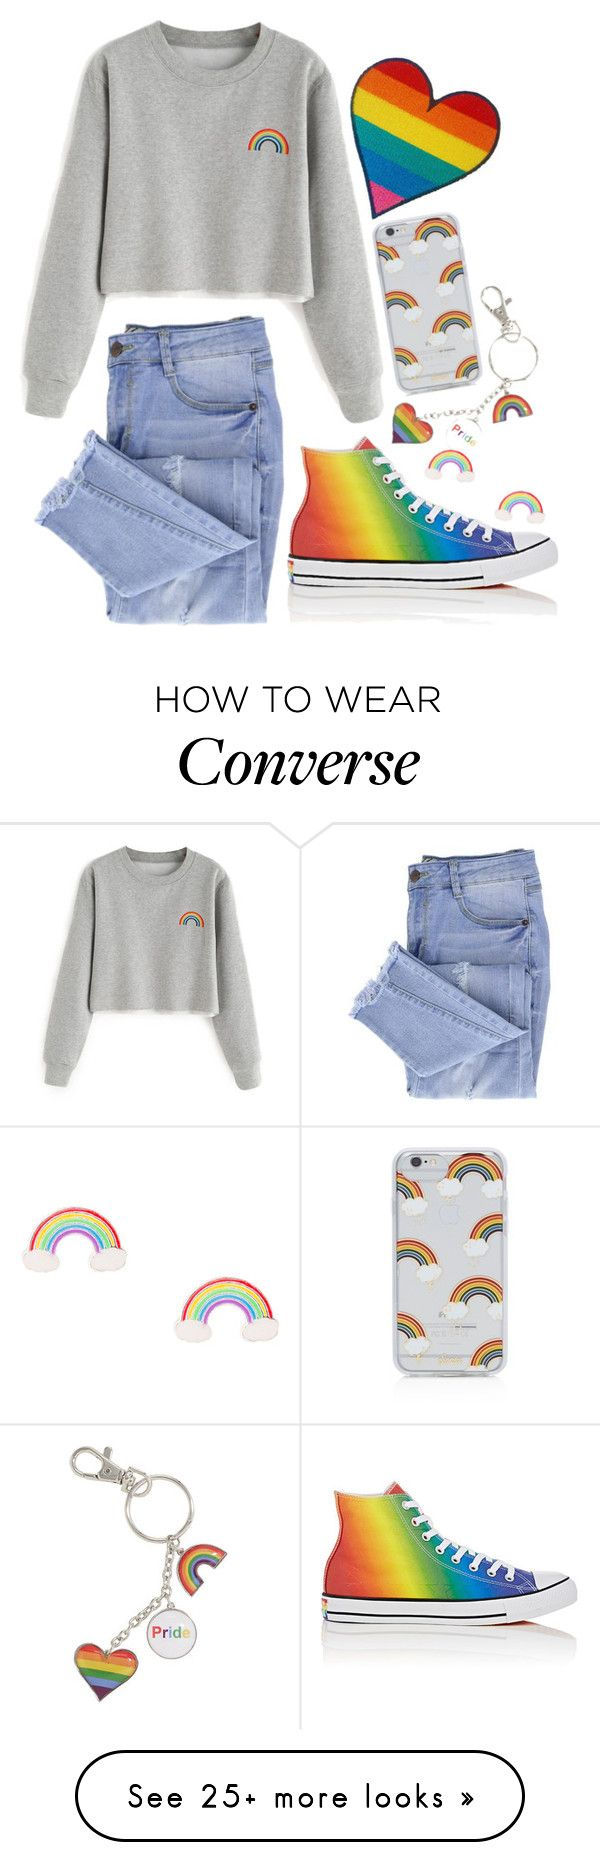 """pride"" by summersunflower7 on Polyvore featuring Converse, Essie, Sonix, denim, rainbow, Sweatshirt, pride and distressedjeans"